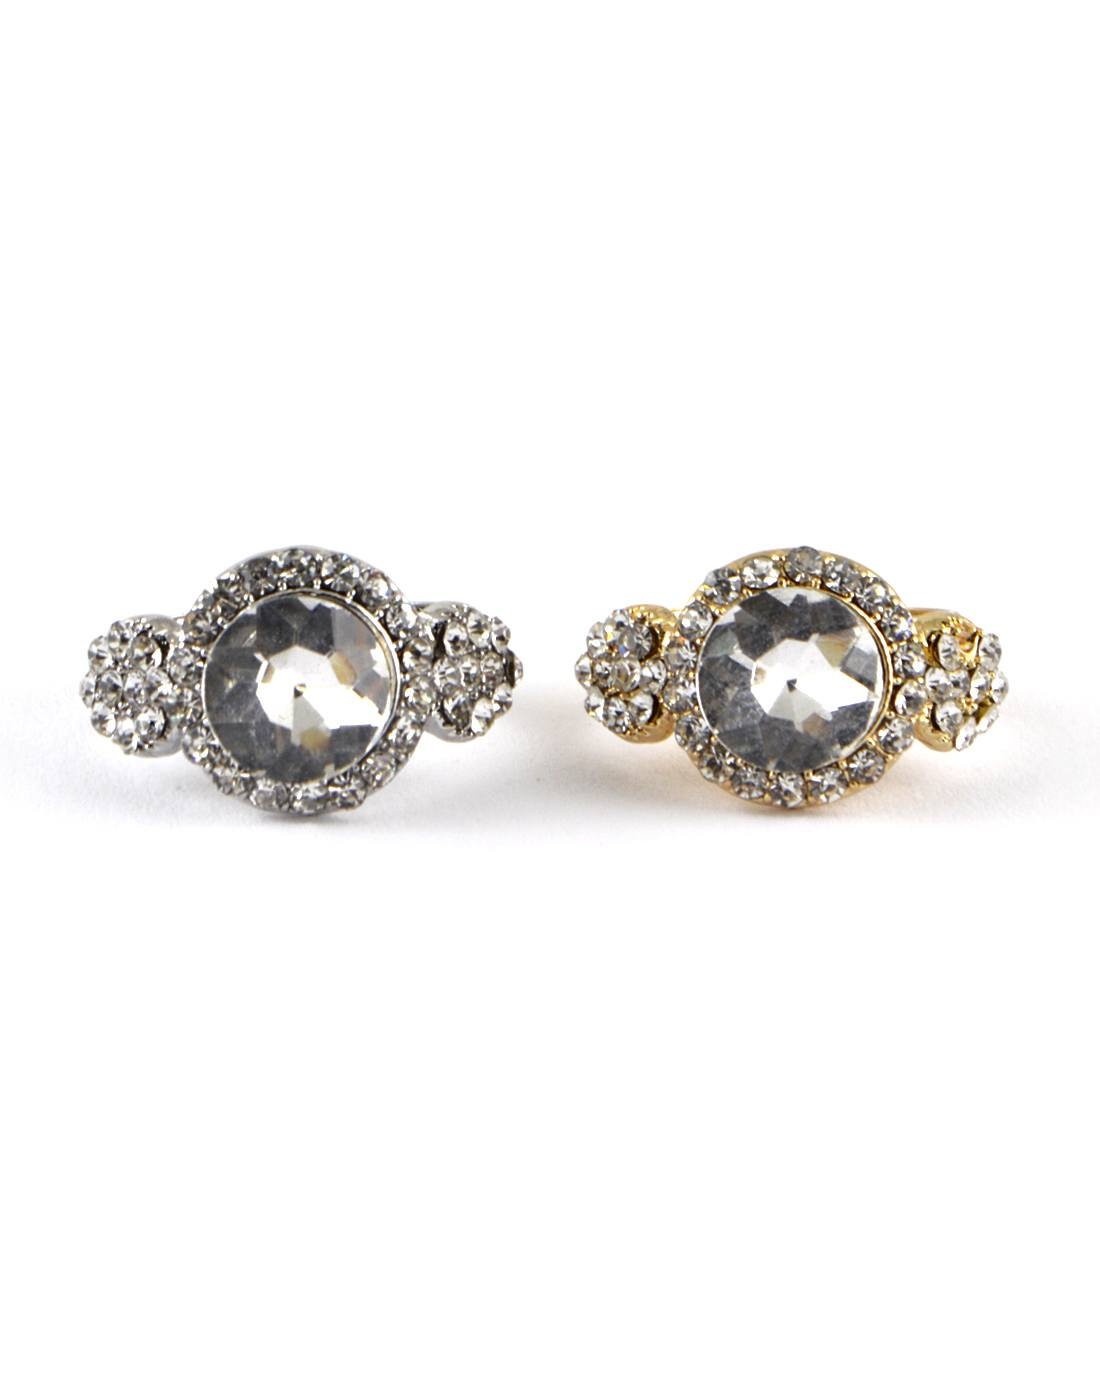 Crystal and Stone Studded Adjustable Ring - Kendalls Deals